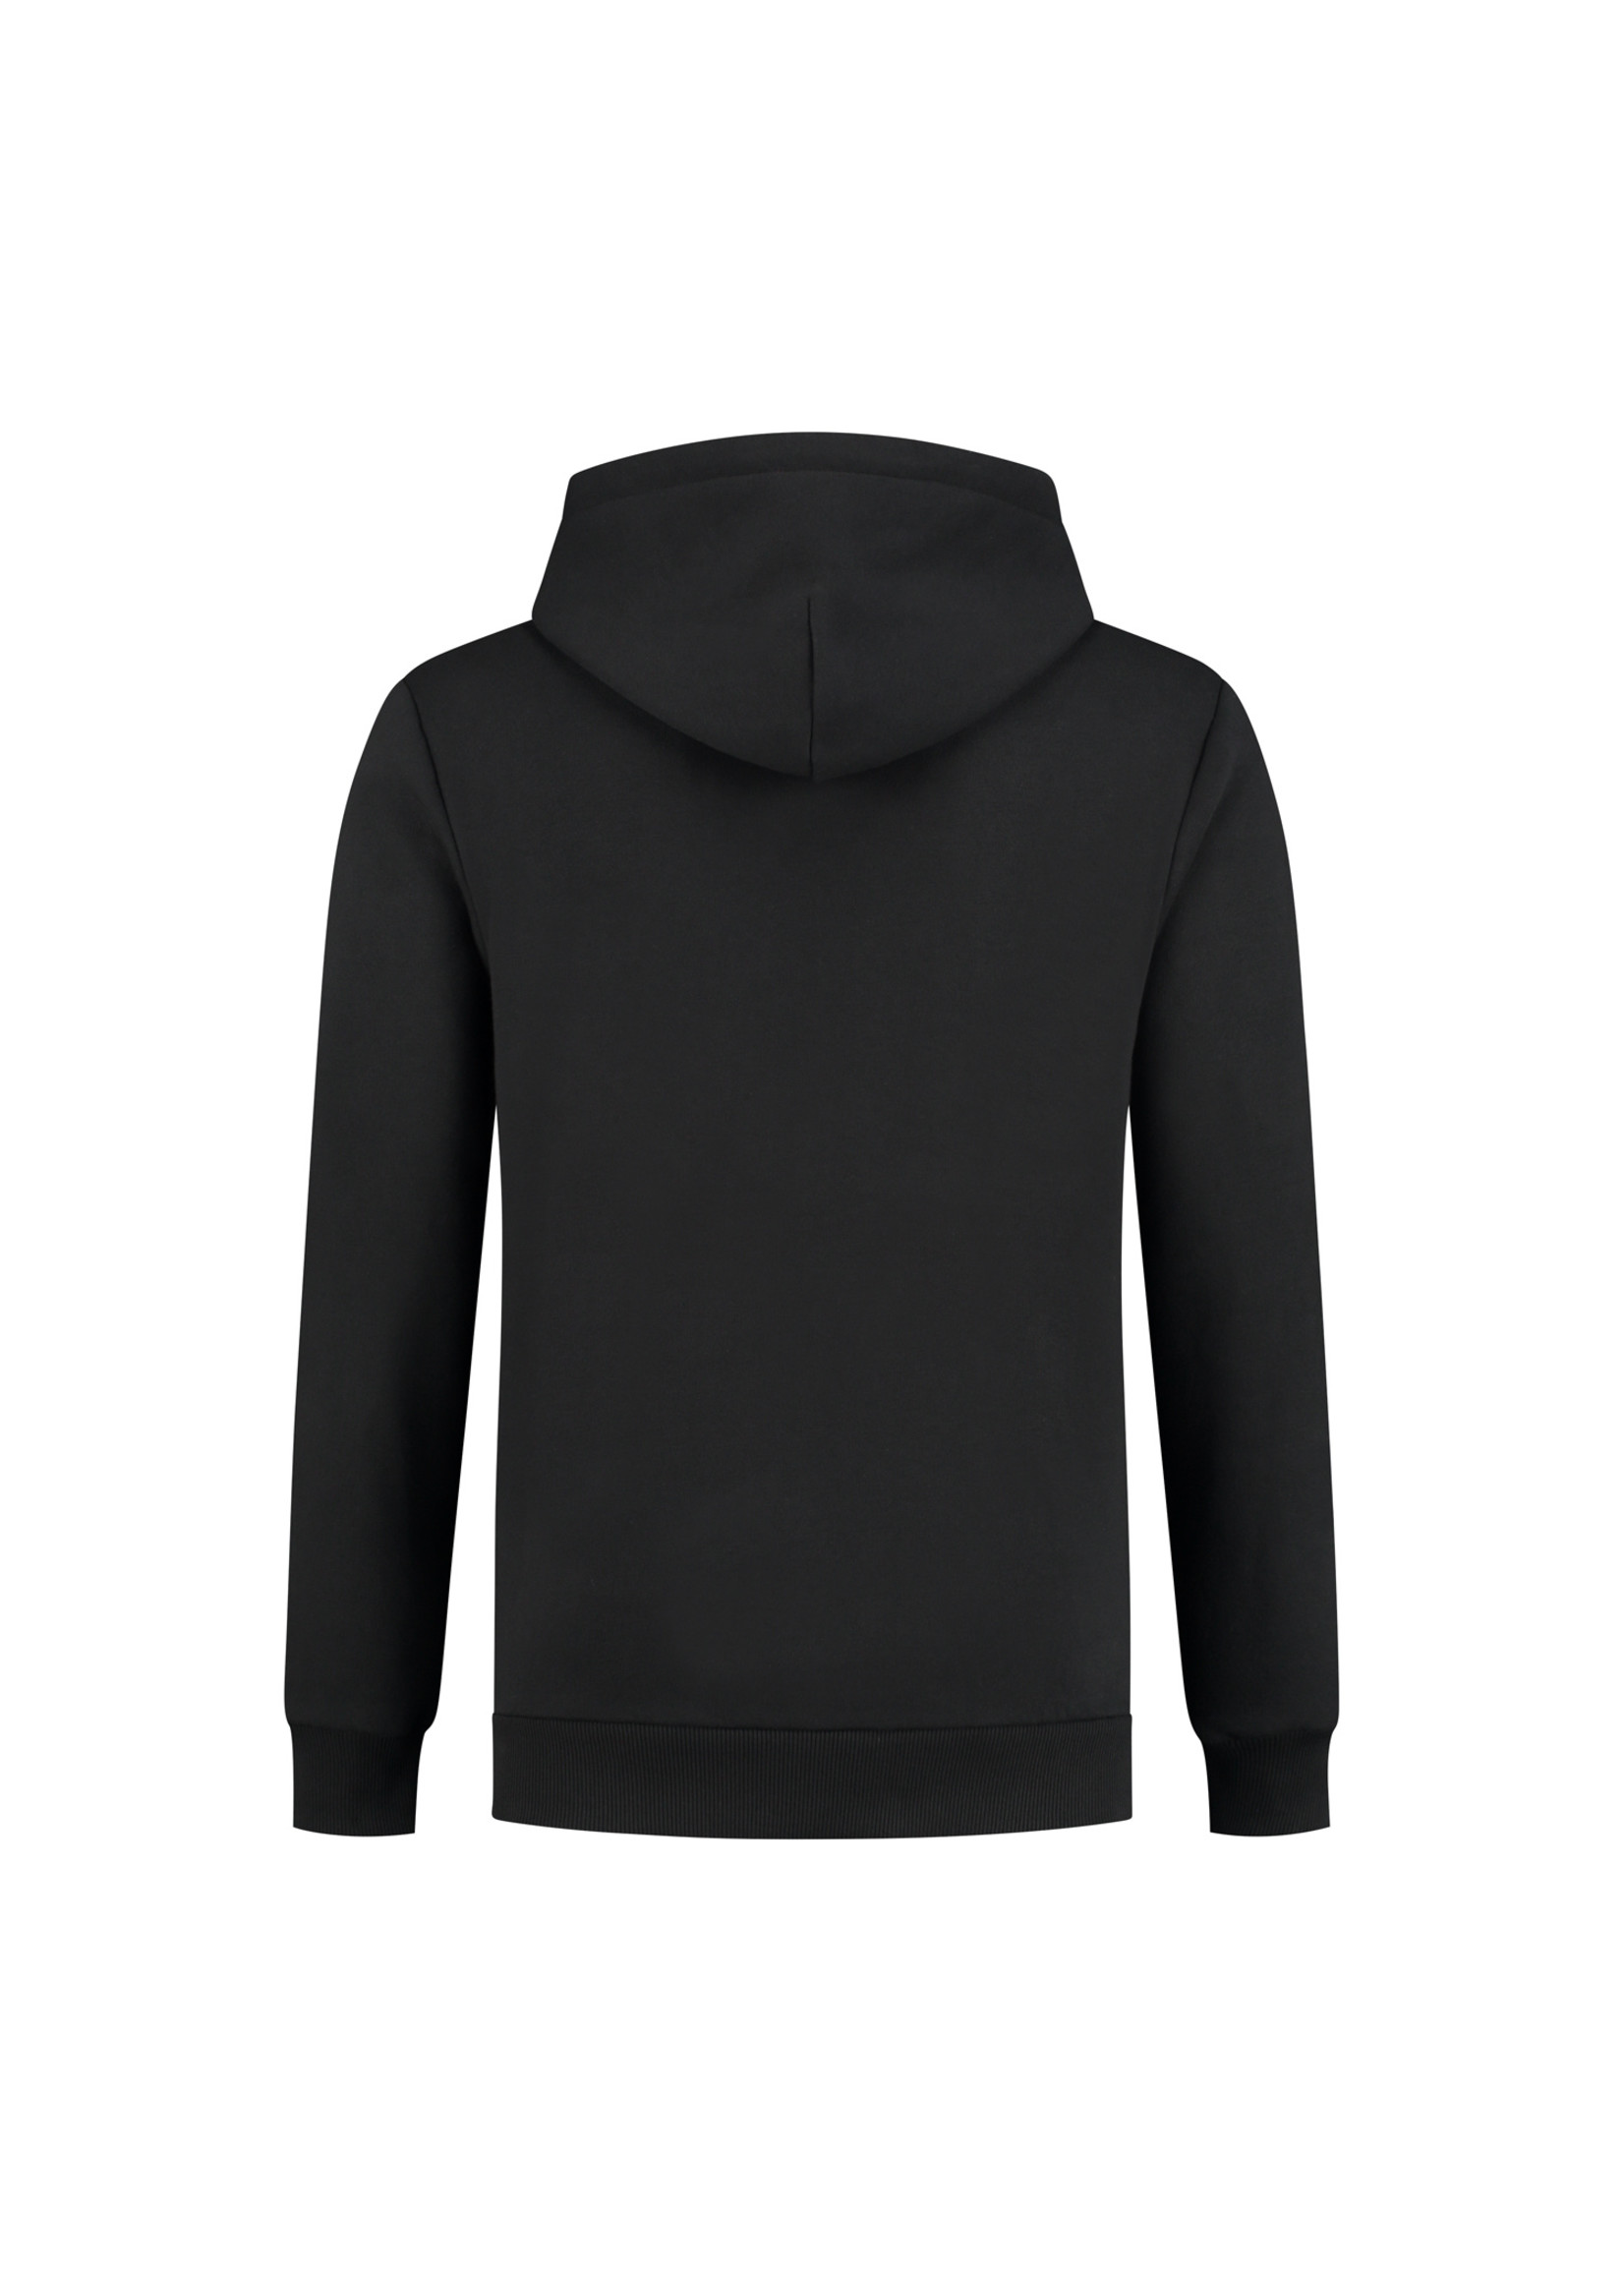 Hoodie Confirm your life - black